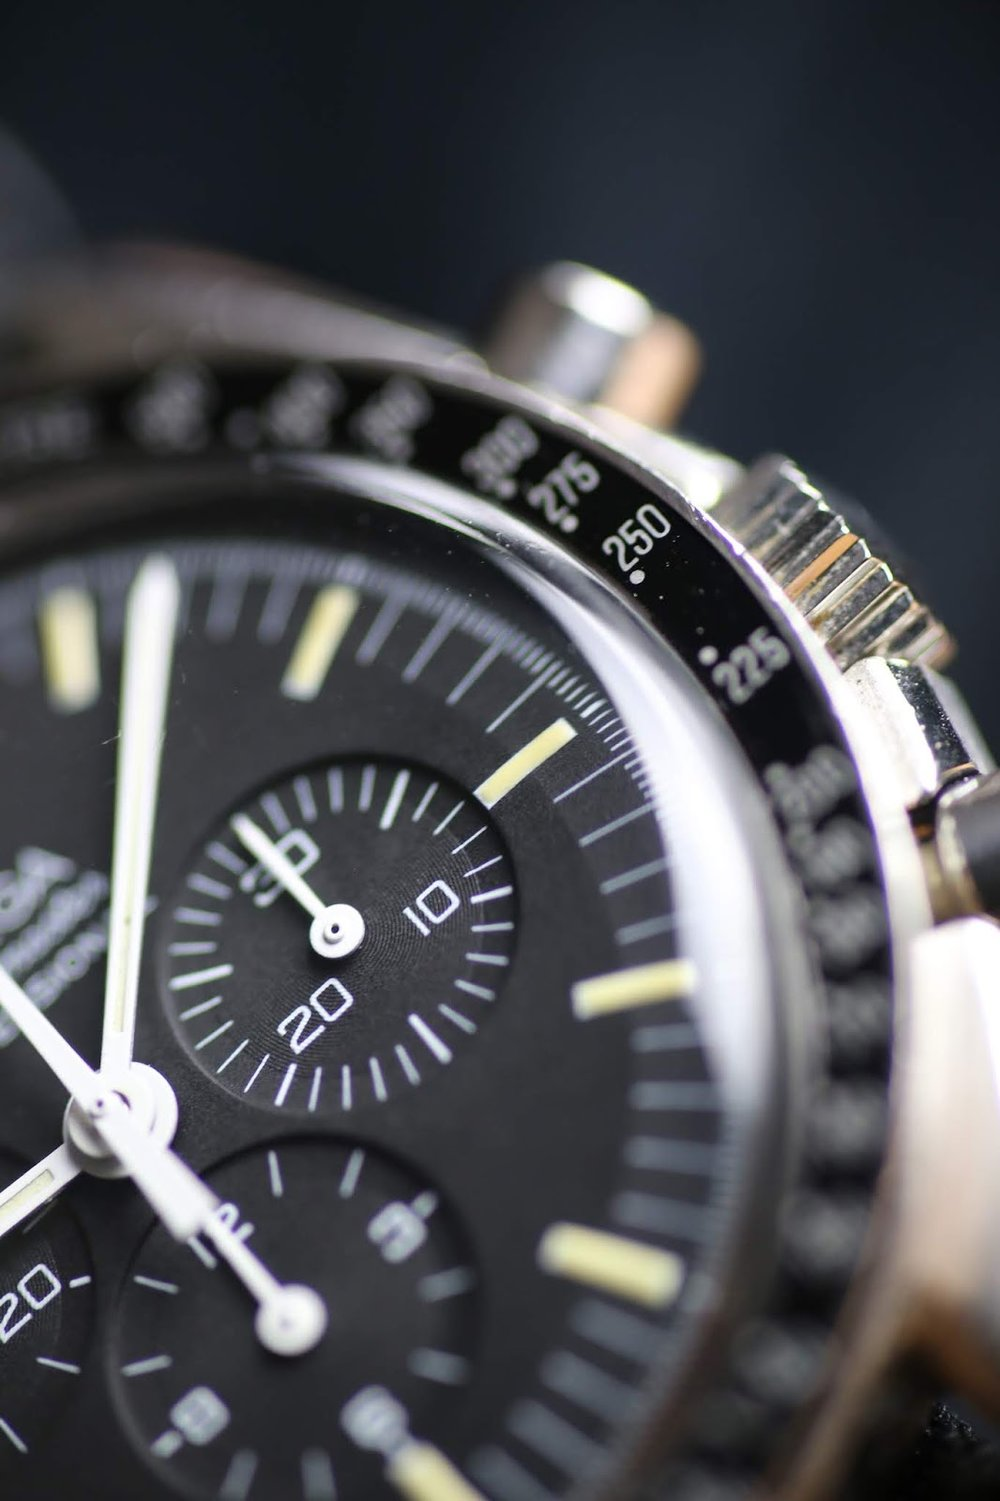 Omega Speedmaster 3590.50 Watch Vault Face.JPG